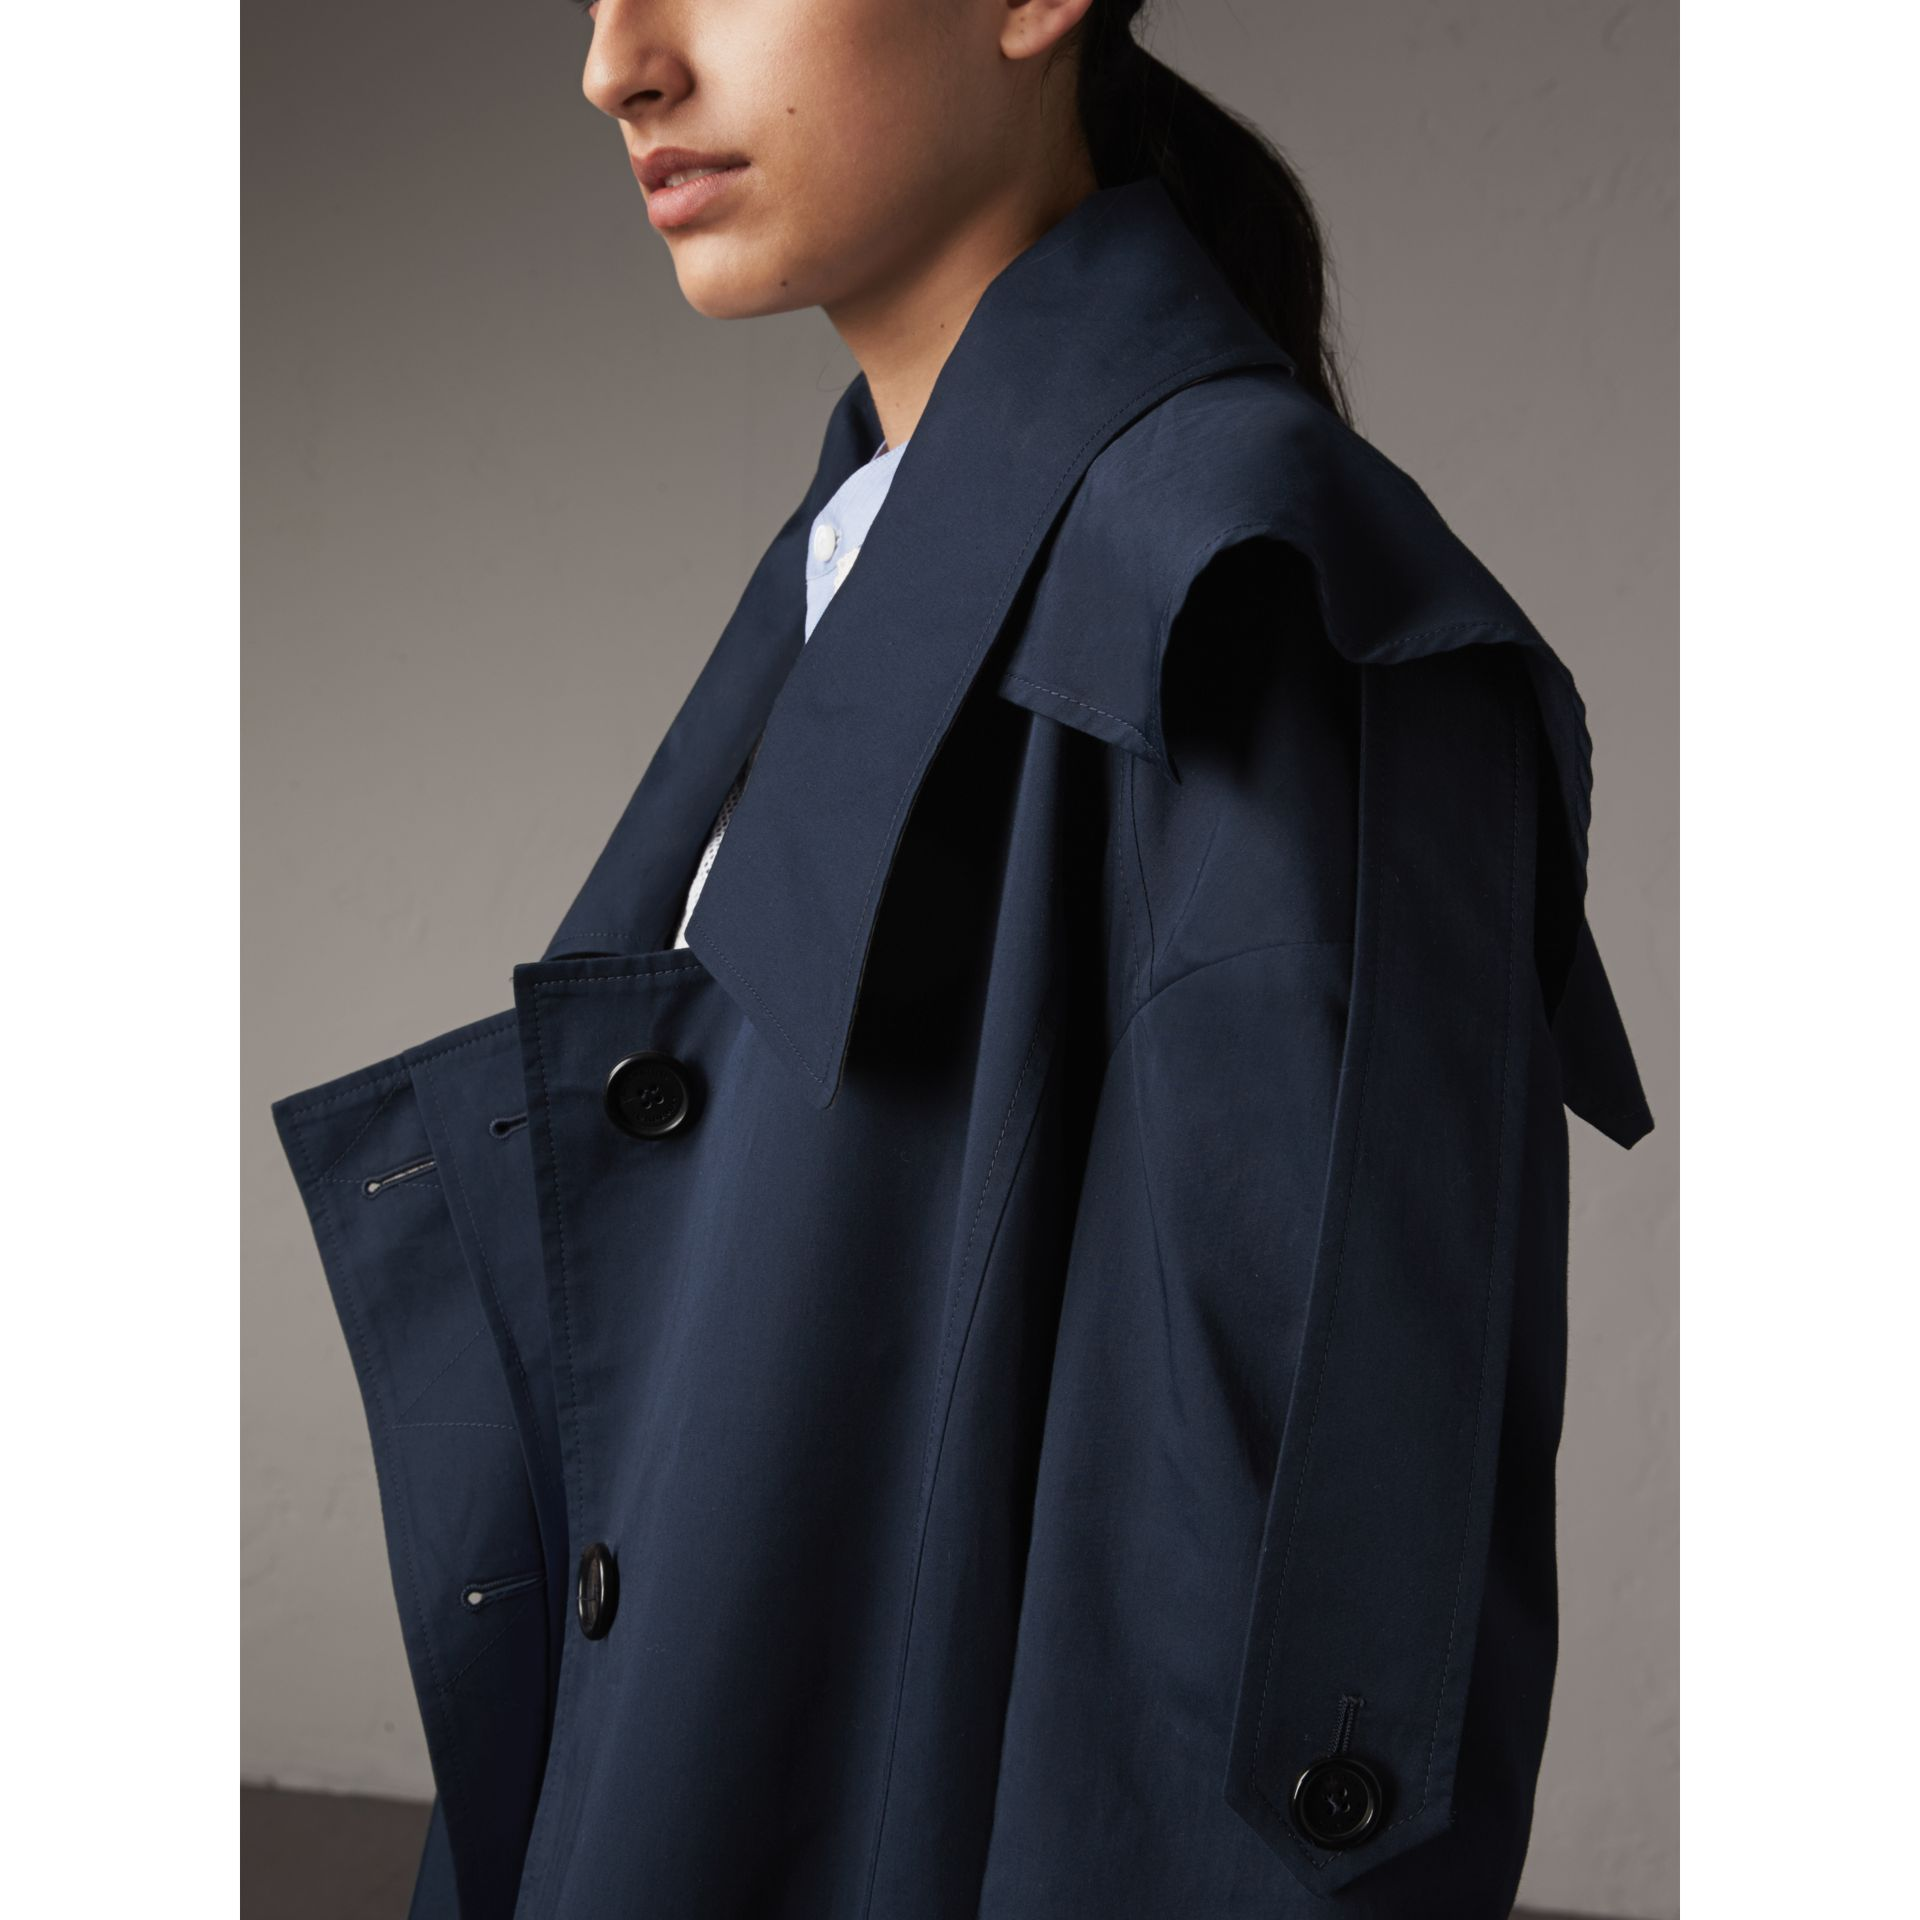 Cotton Asymmetric Trench Coat in Navy - Women | Burberry - gallery image 2